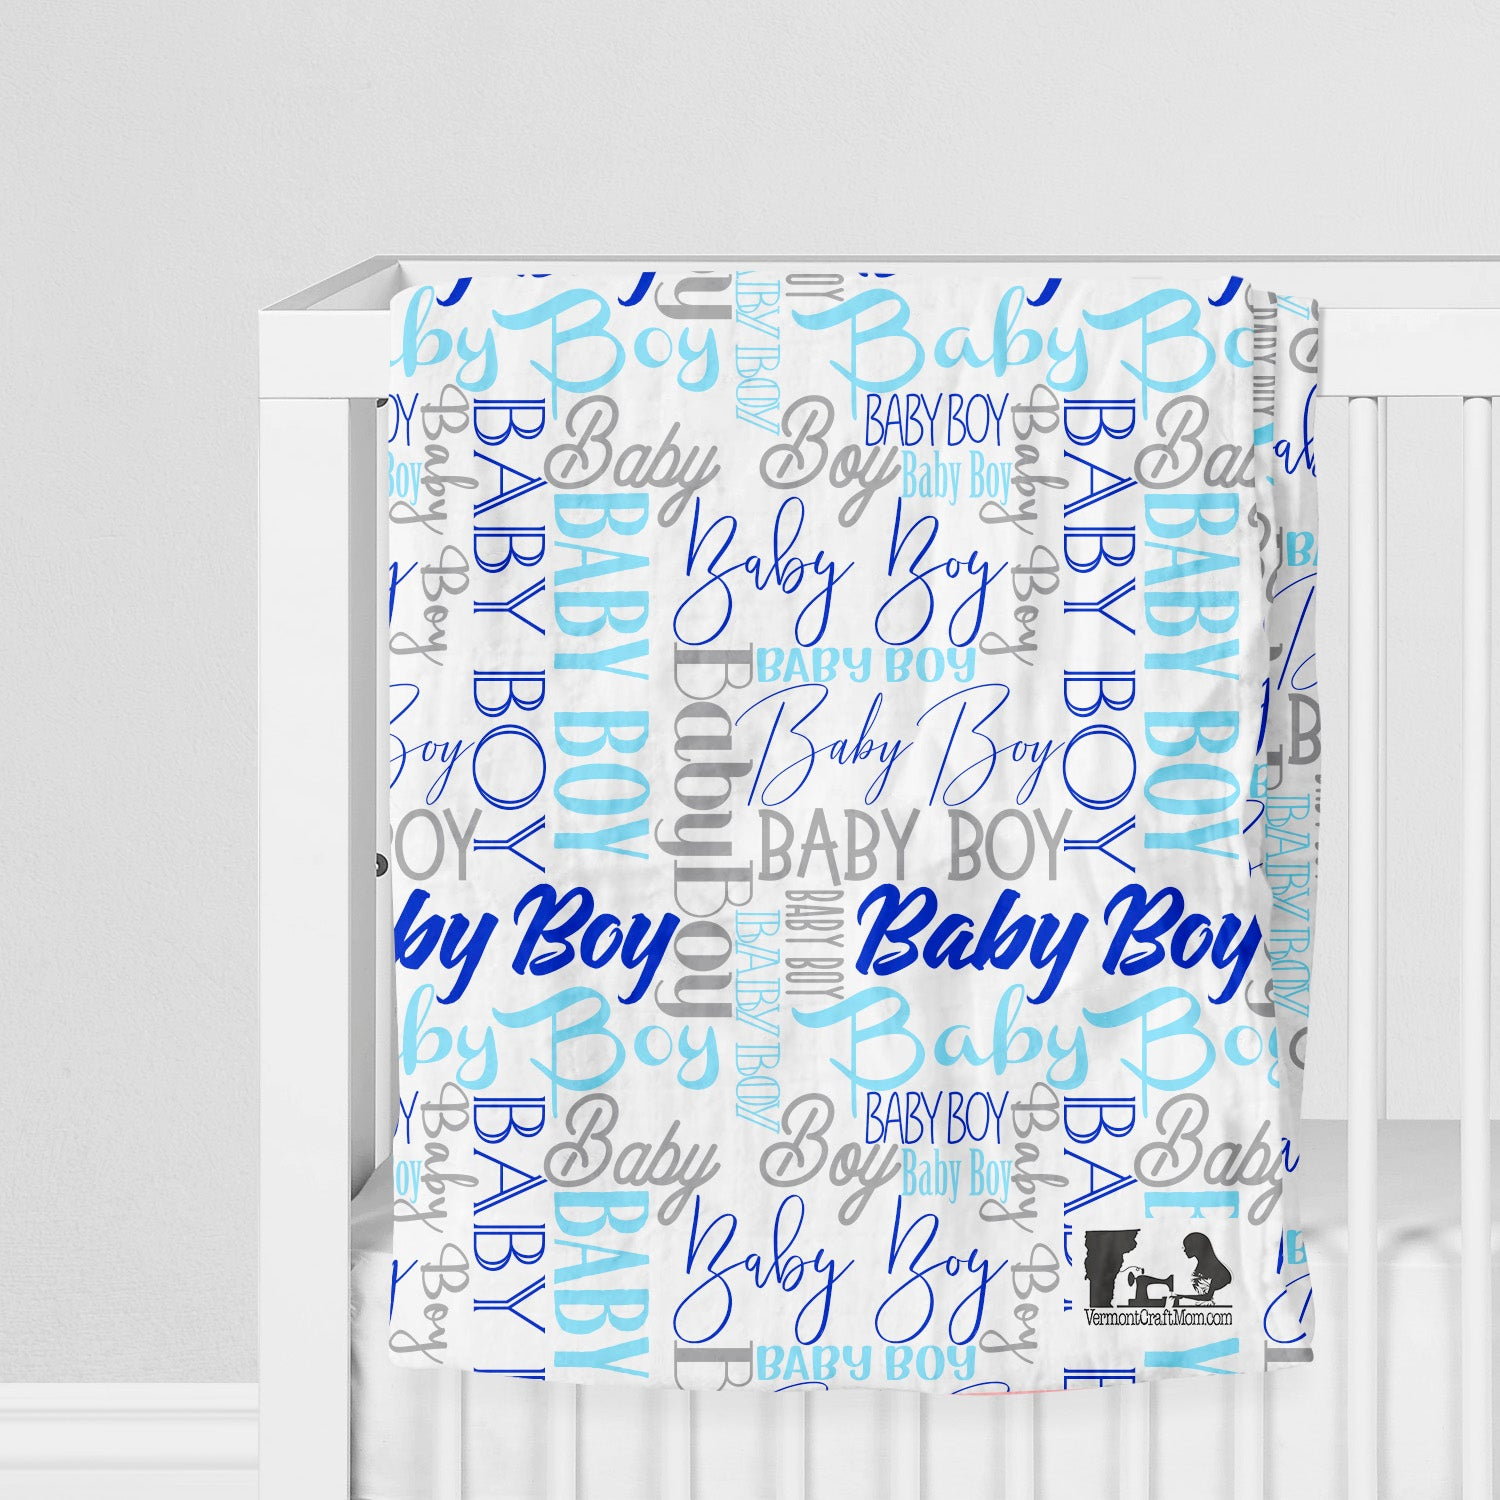 Baby Girl or Baby Boy Swaddle or Fleece Blanket